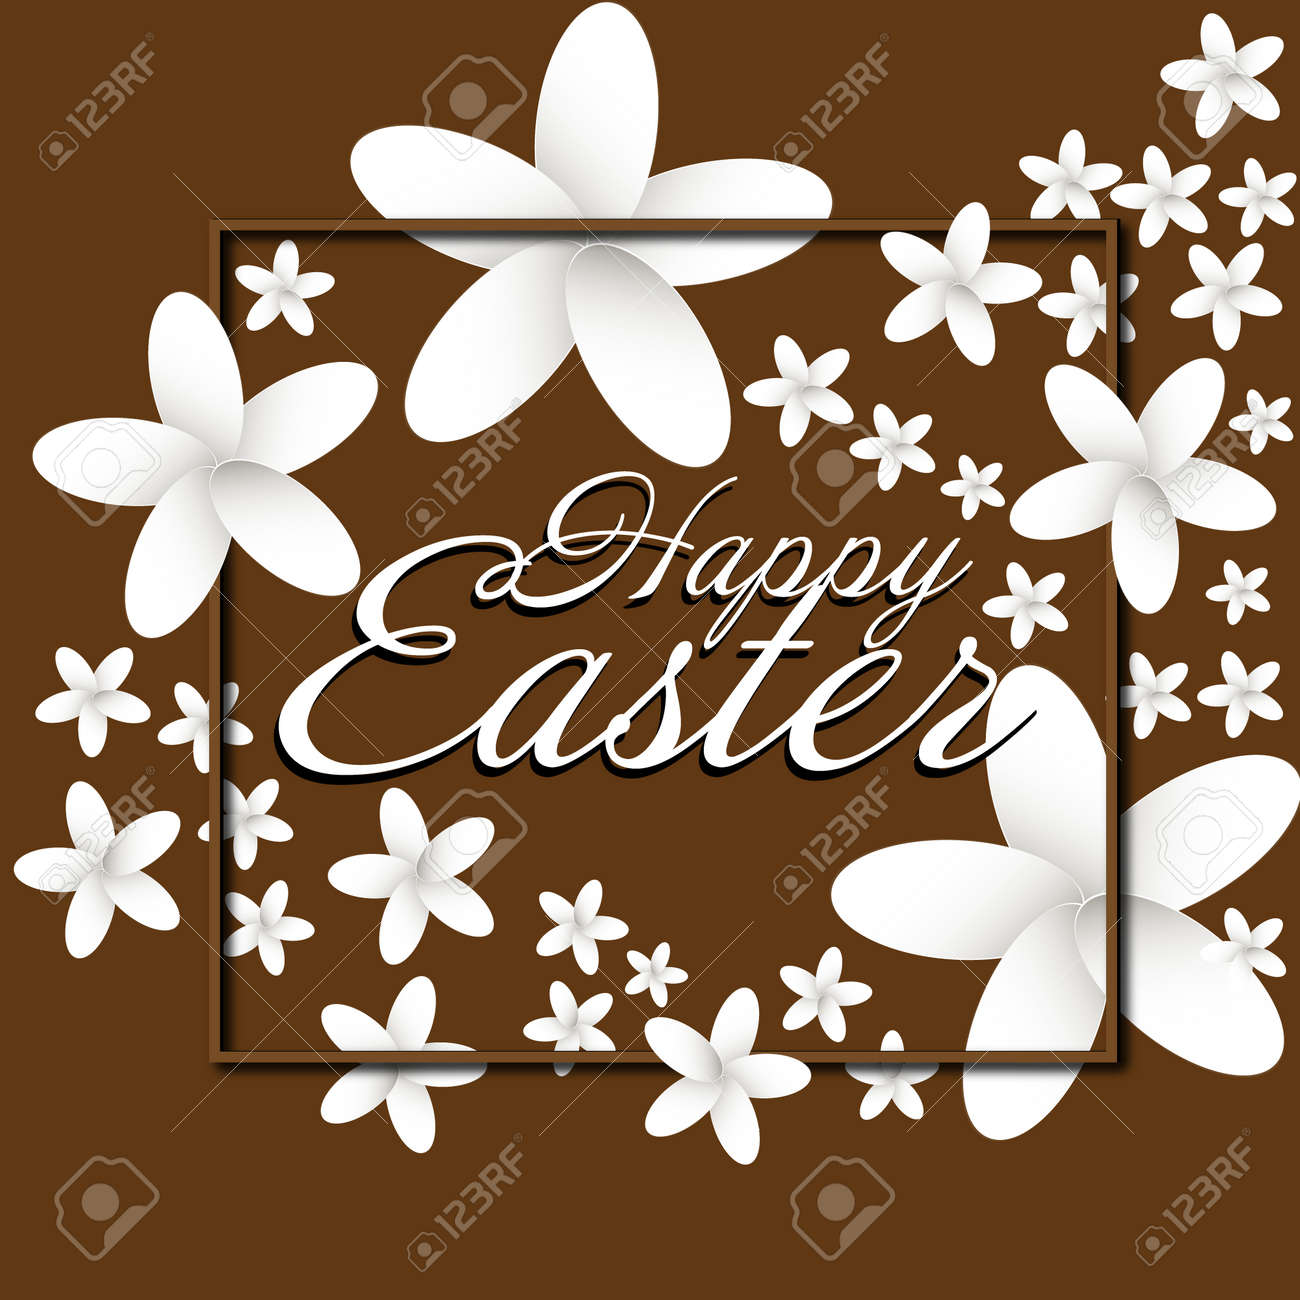 Happy Easter Flowers Frame Paper Flowers Easter Greeting Card